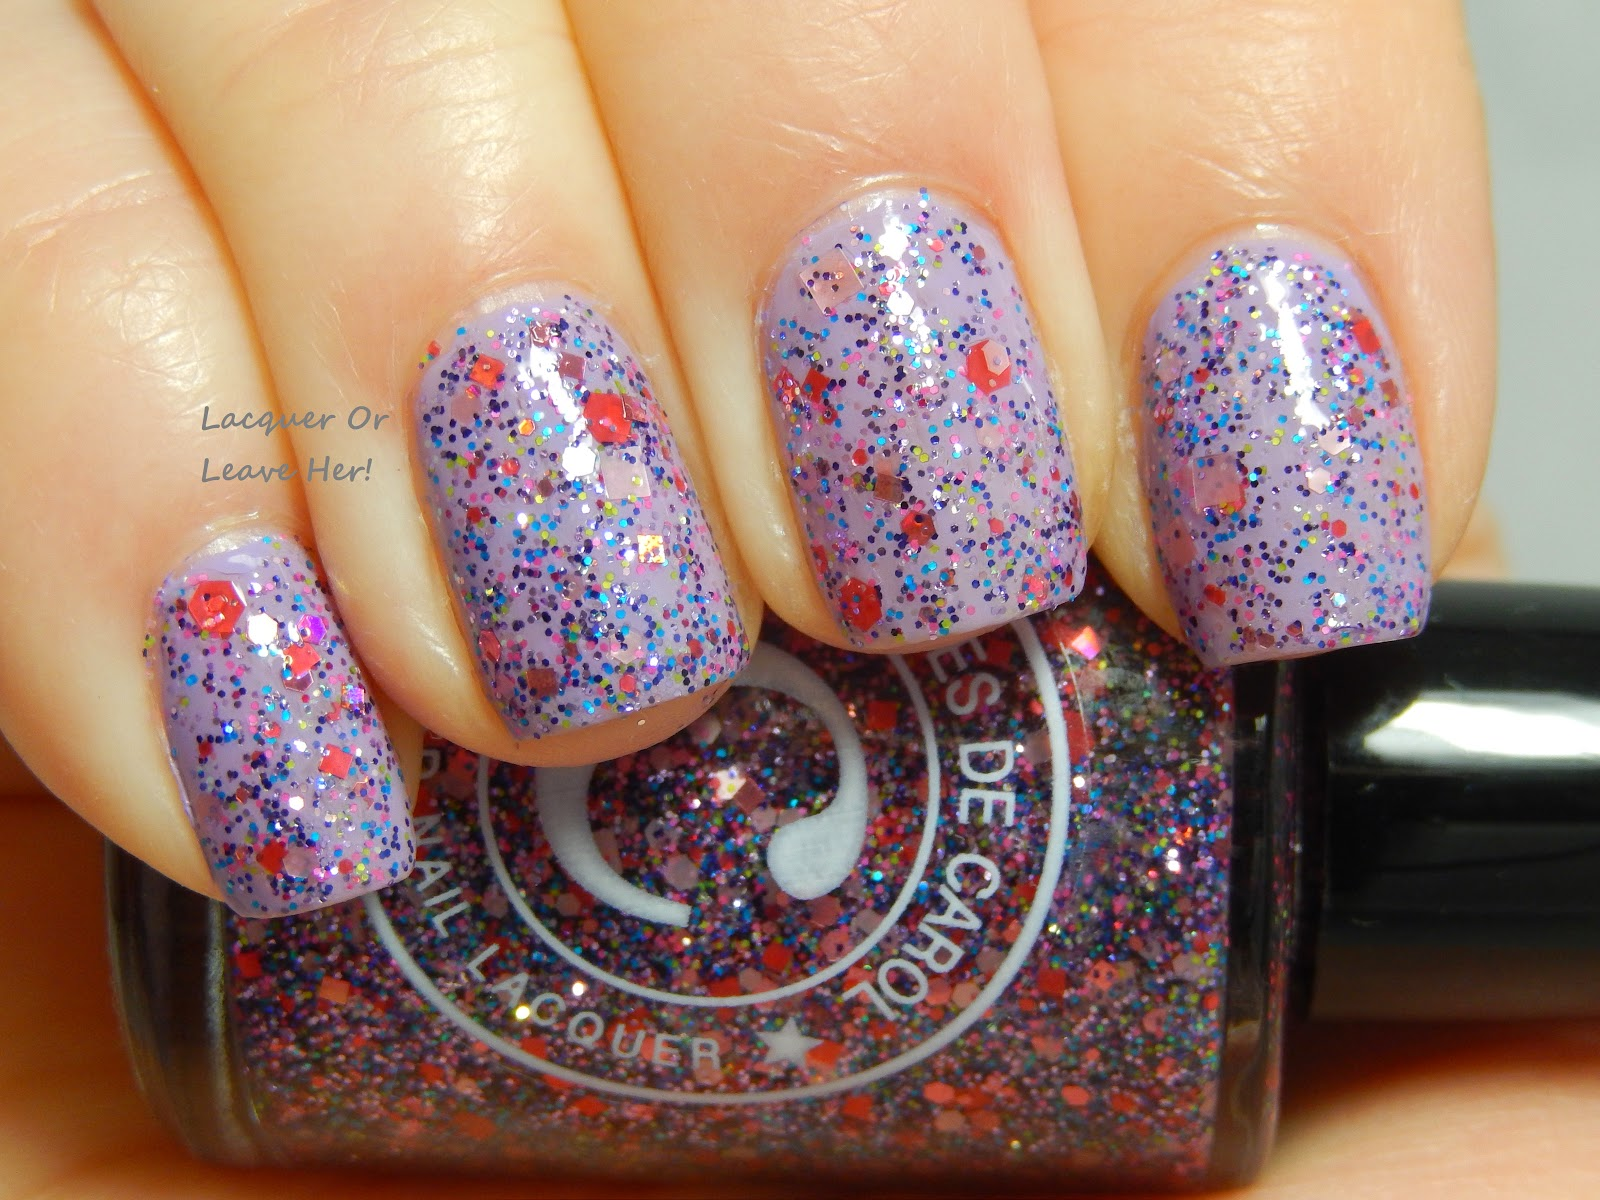 Colores de Carol Jesse's Girl over China Glaze Tart-y For The Party